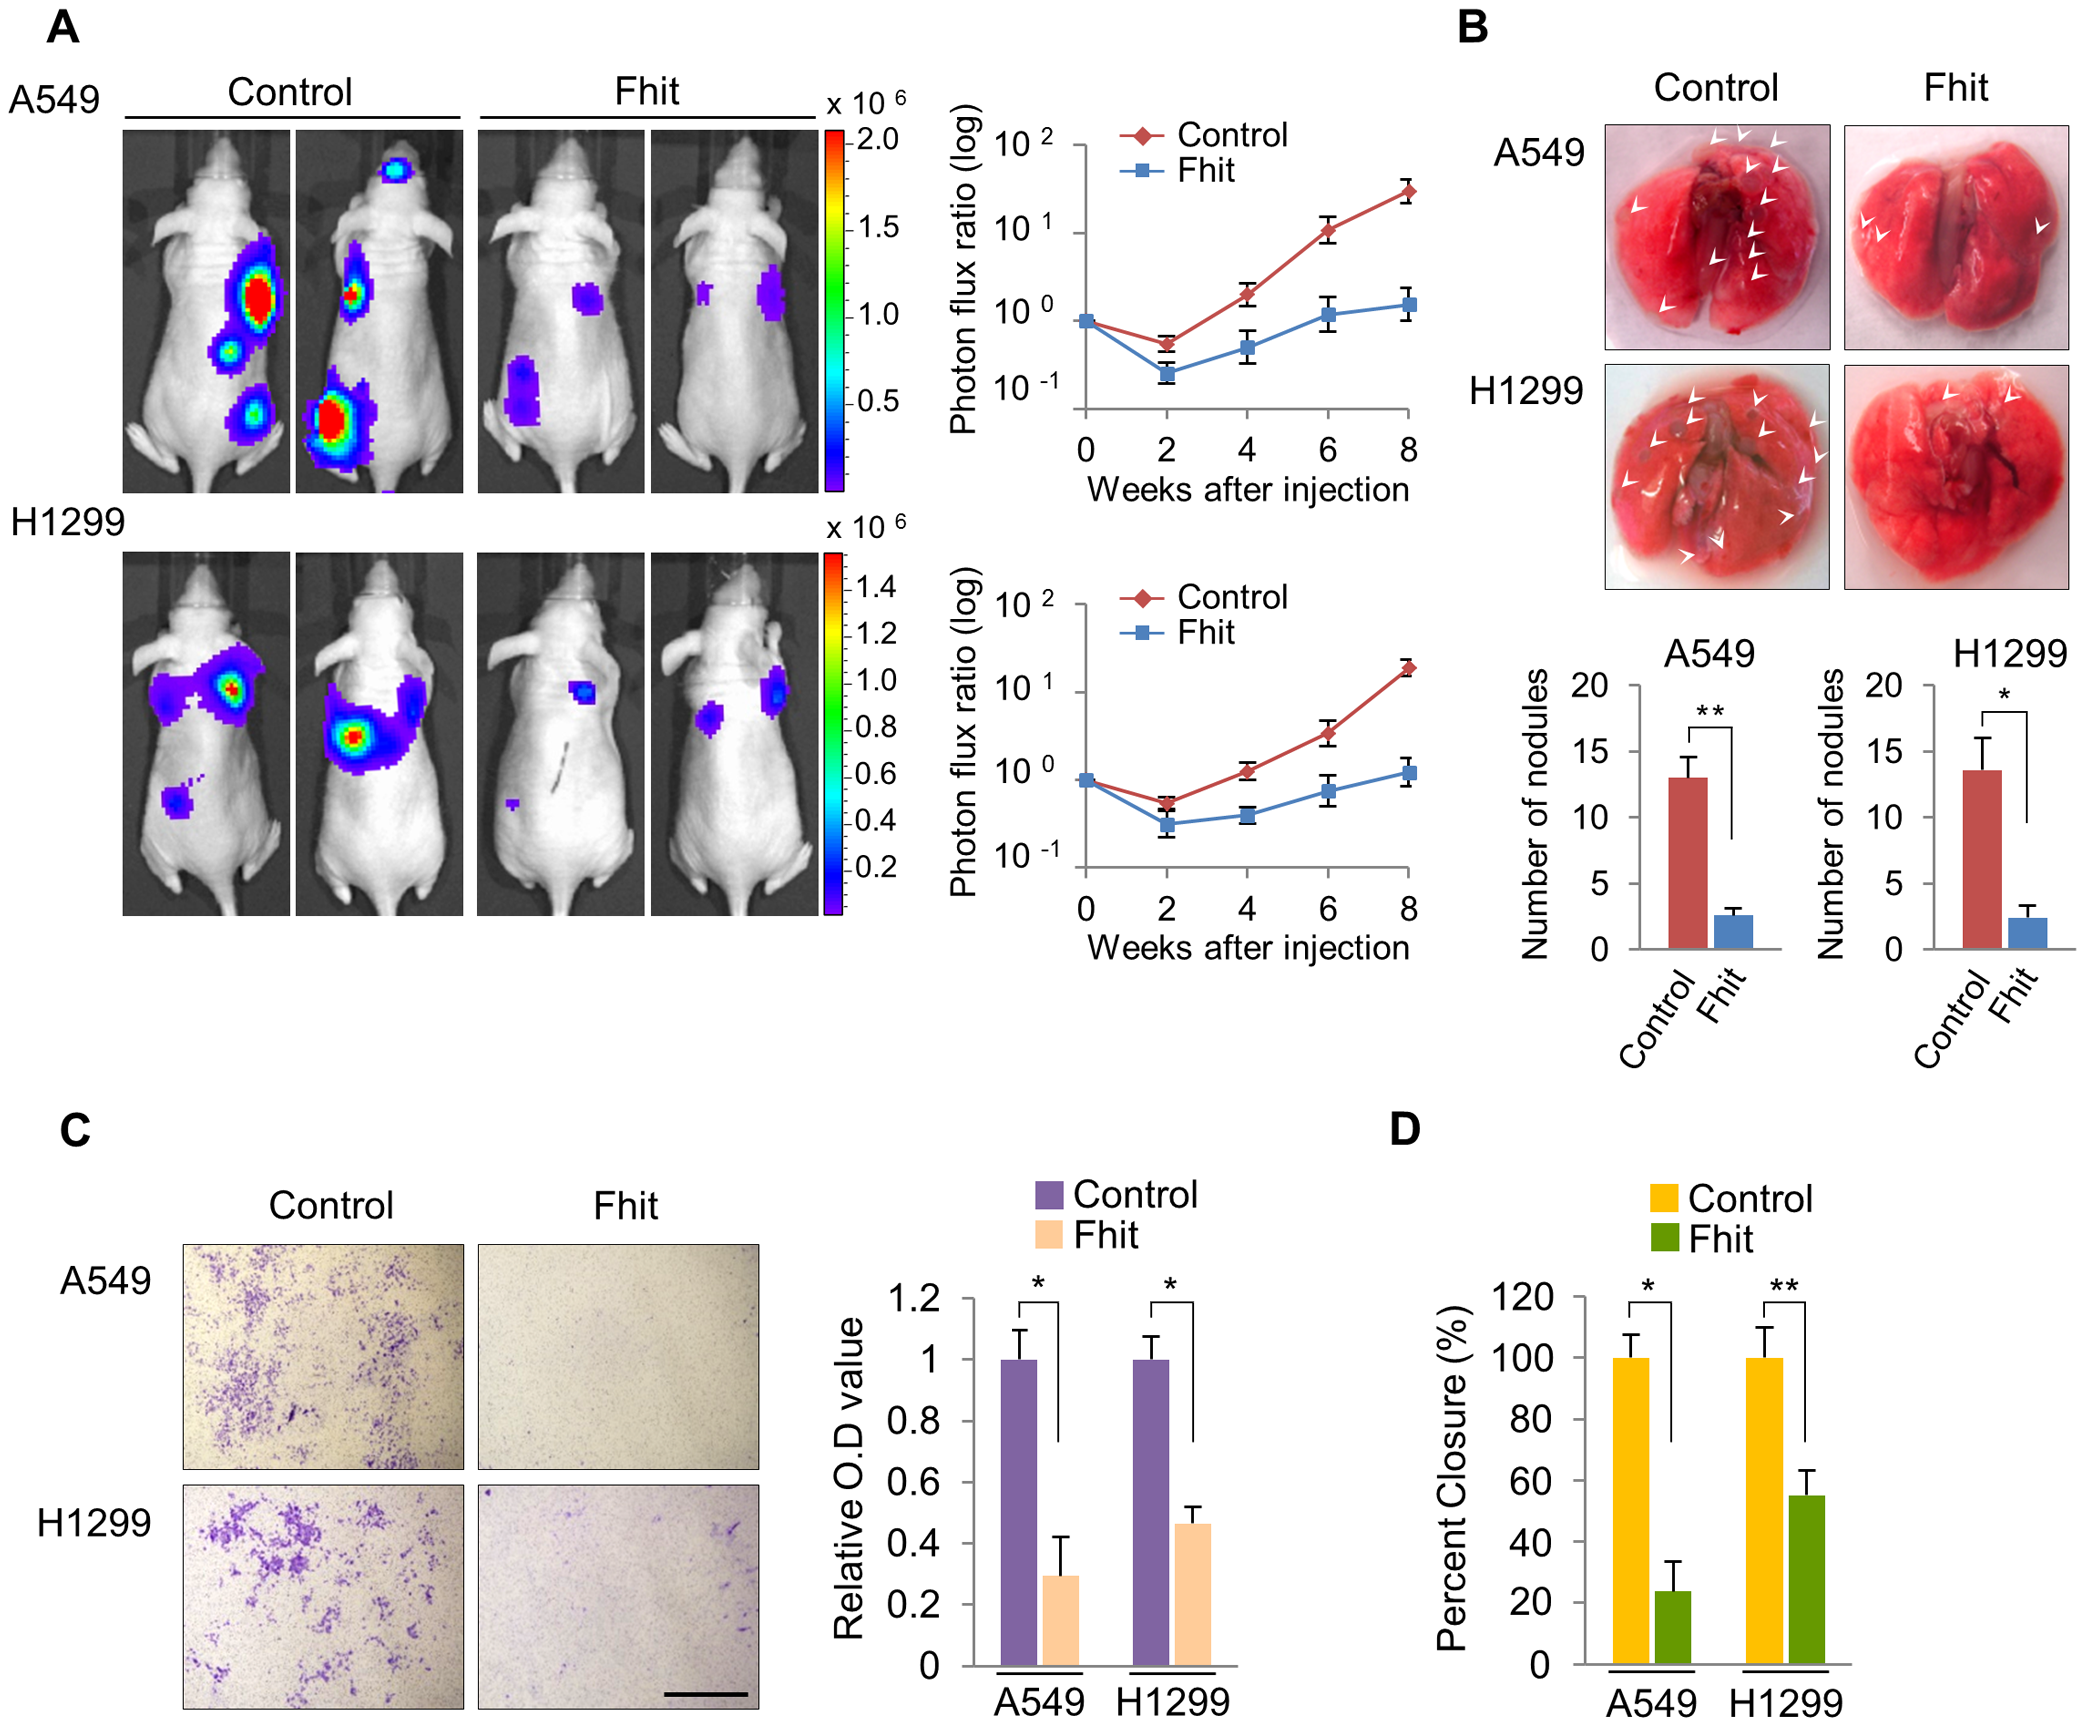 Elevated FHIT expression inhibits metastasis in human NSCLCs.